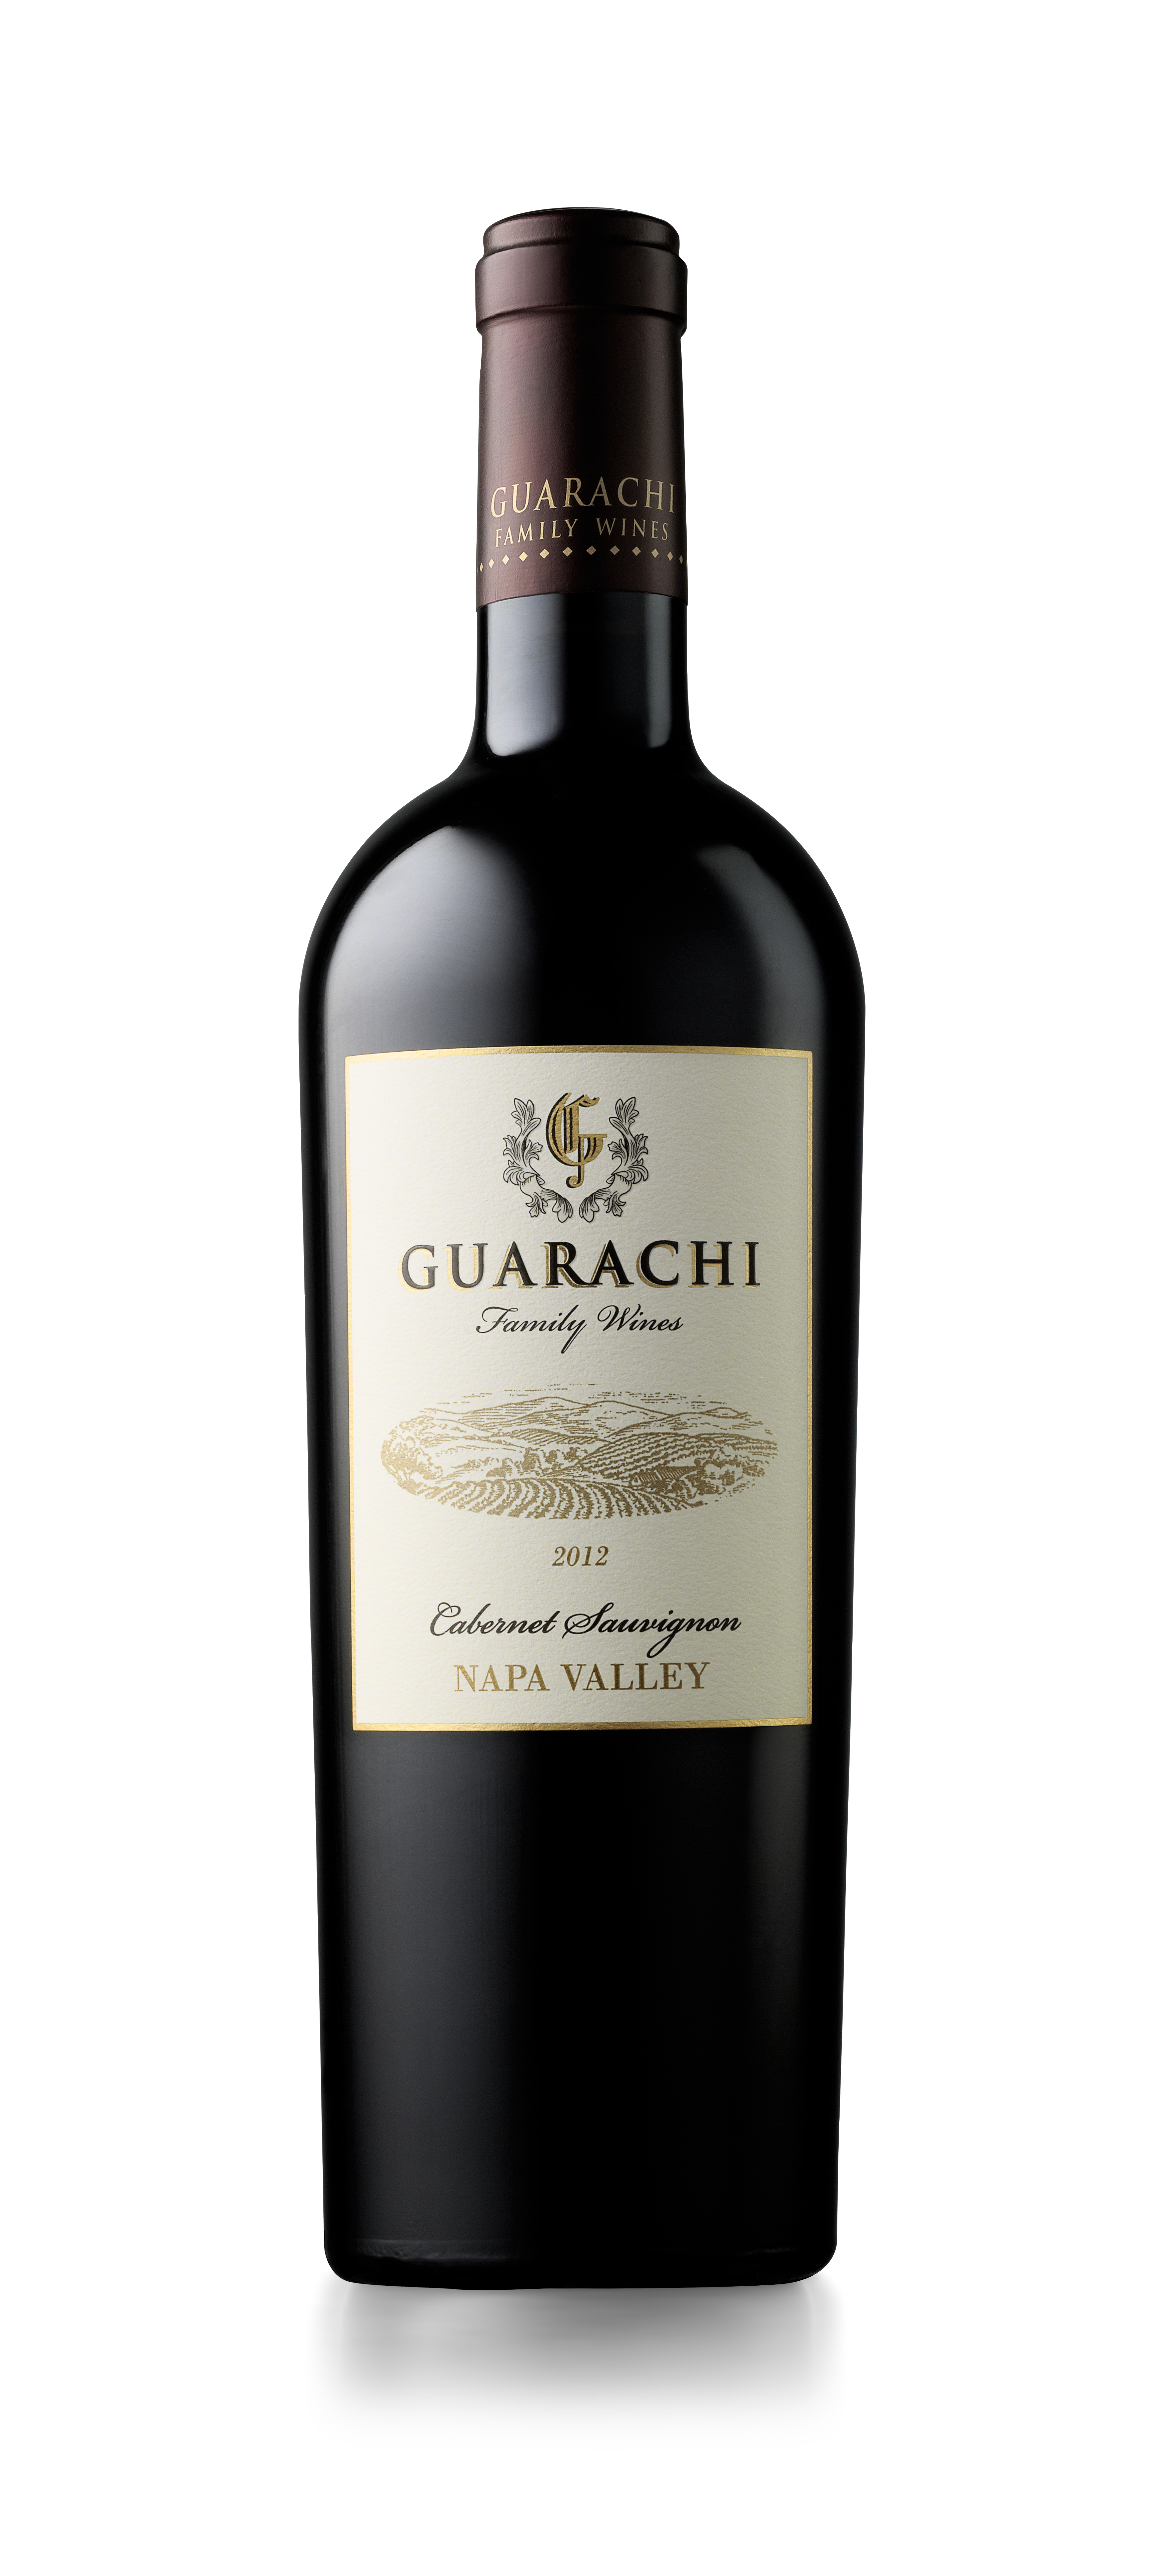 Guarachi Family Wines Napa Valley Cabernet Sauvignon 2012